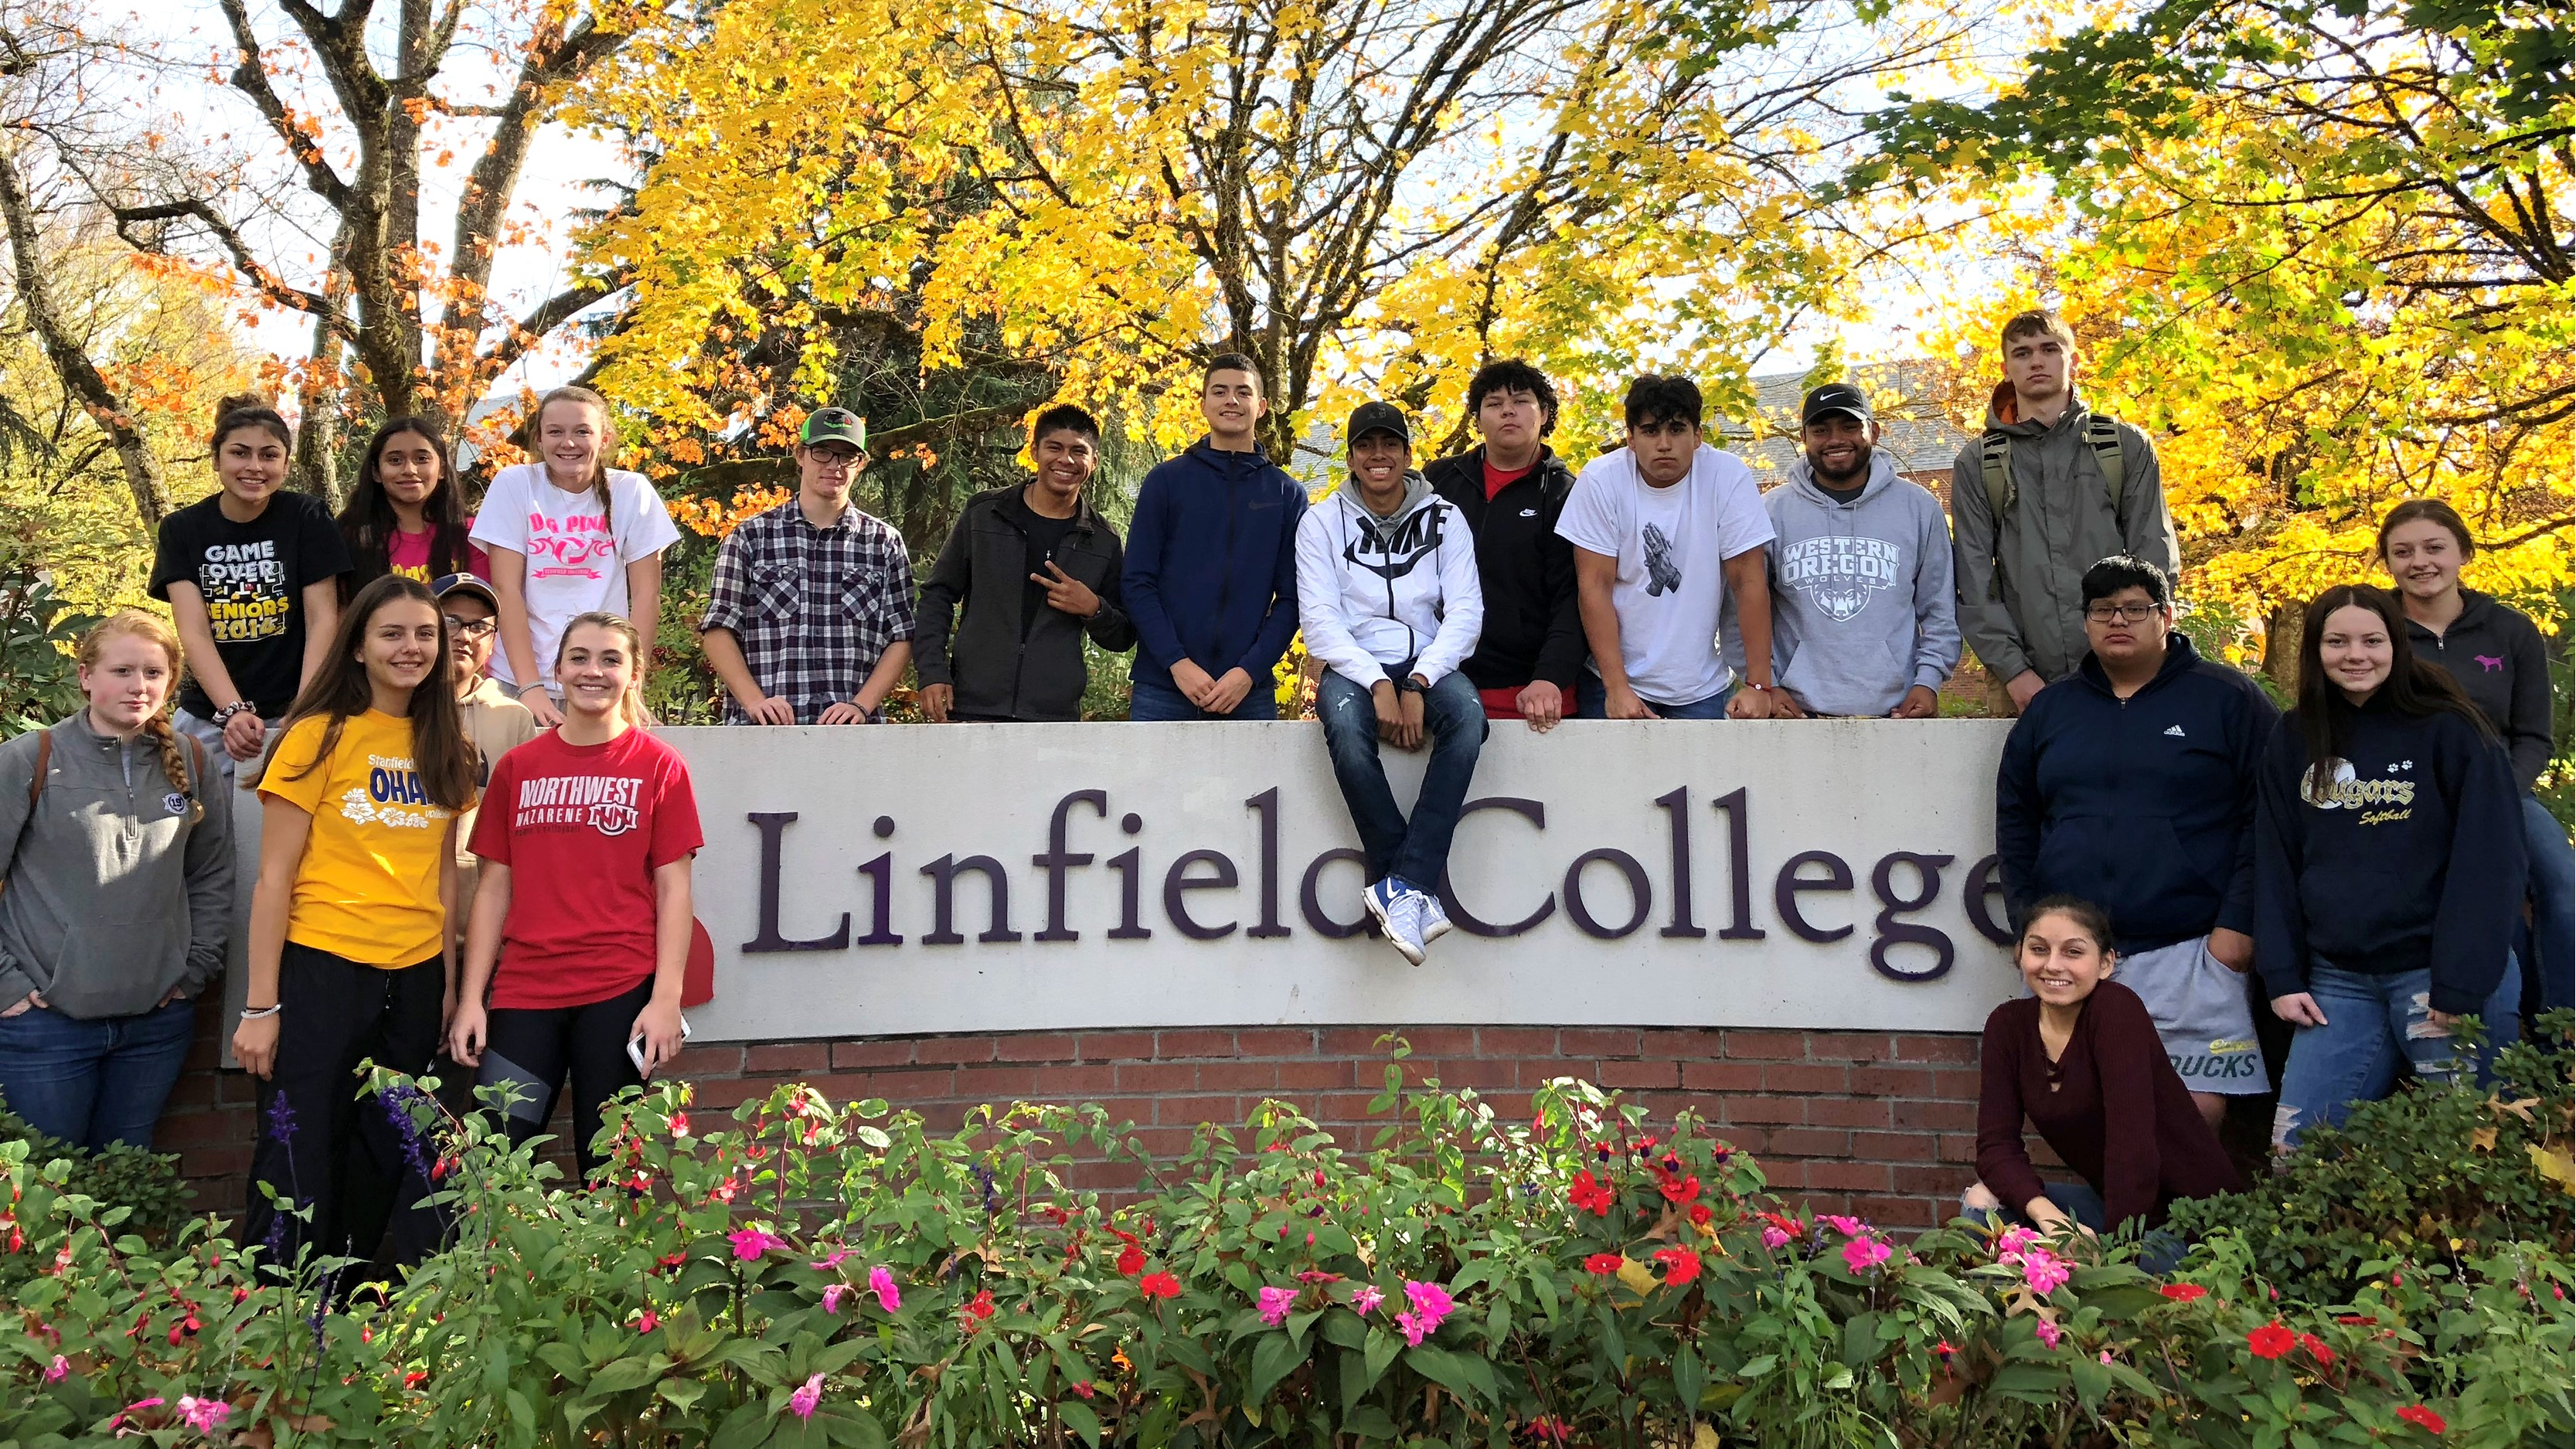 Group of Stanfield students by Linfield College sign